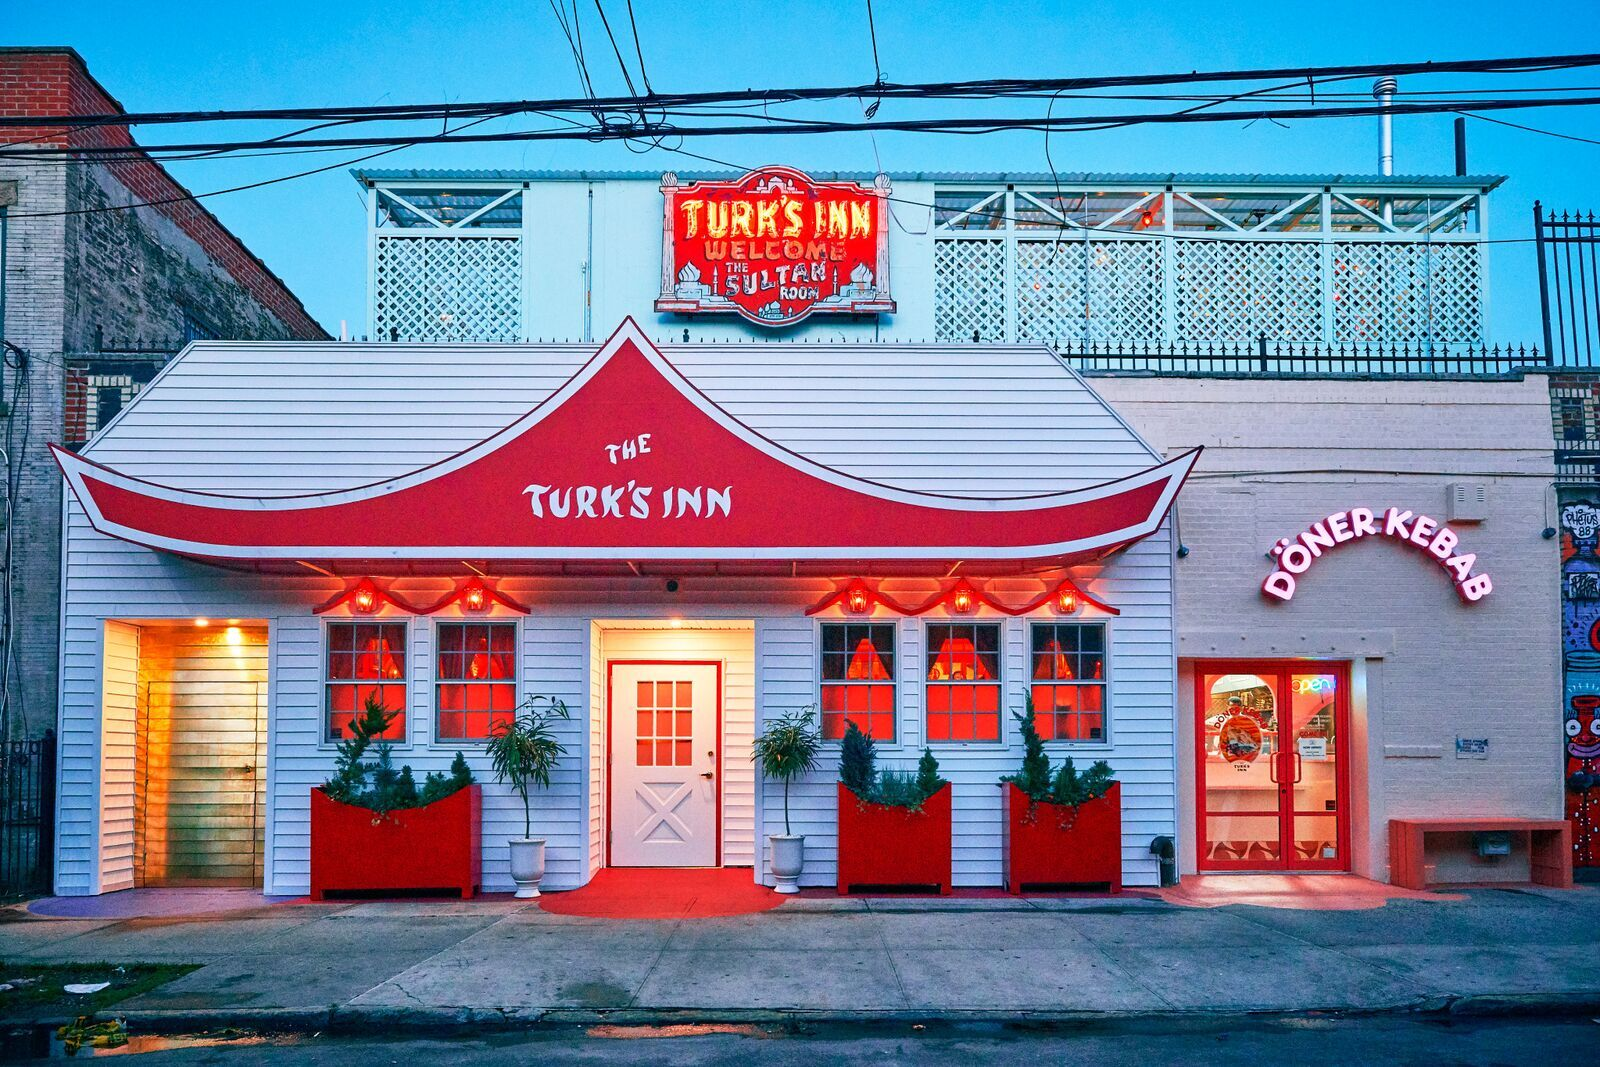 Turk's Inn midwest supper club is revived as Bushwick restaurant and music venue